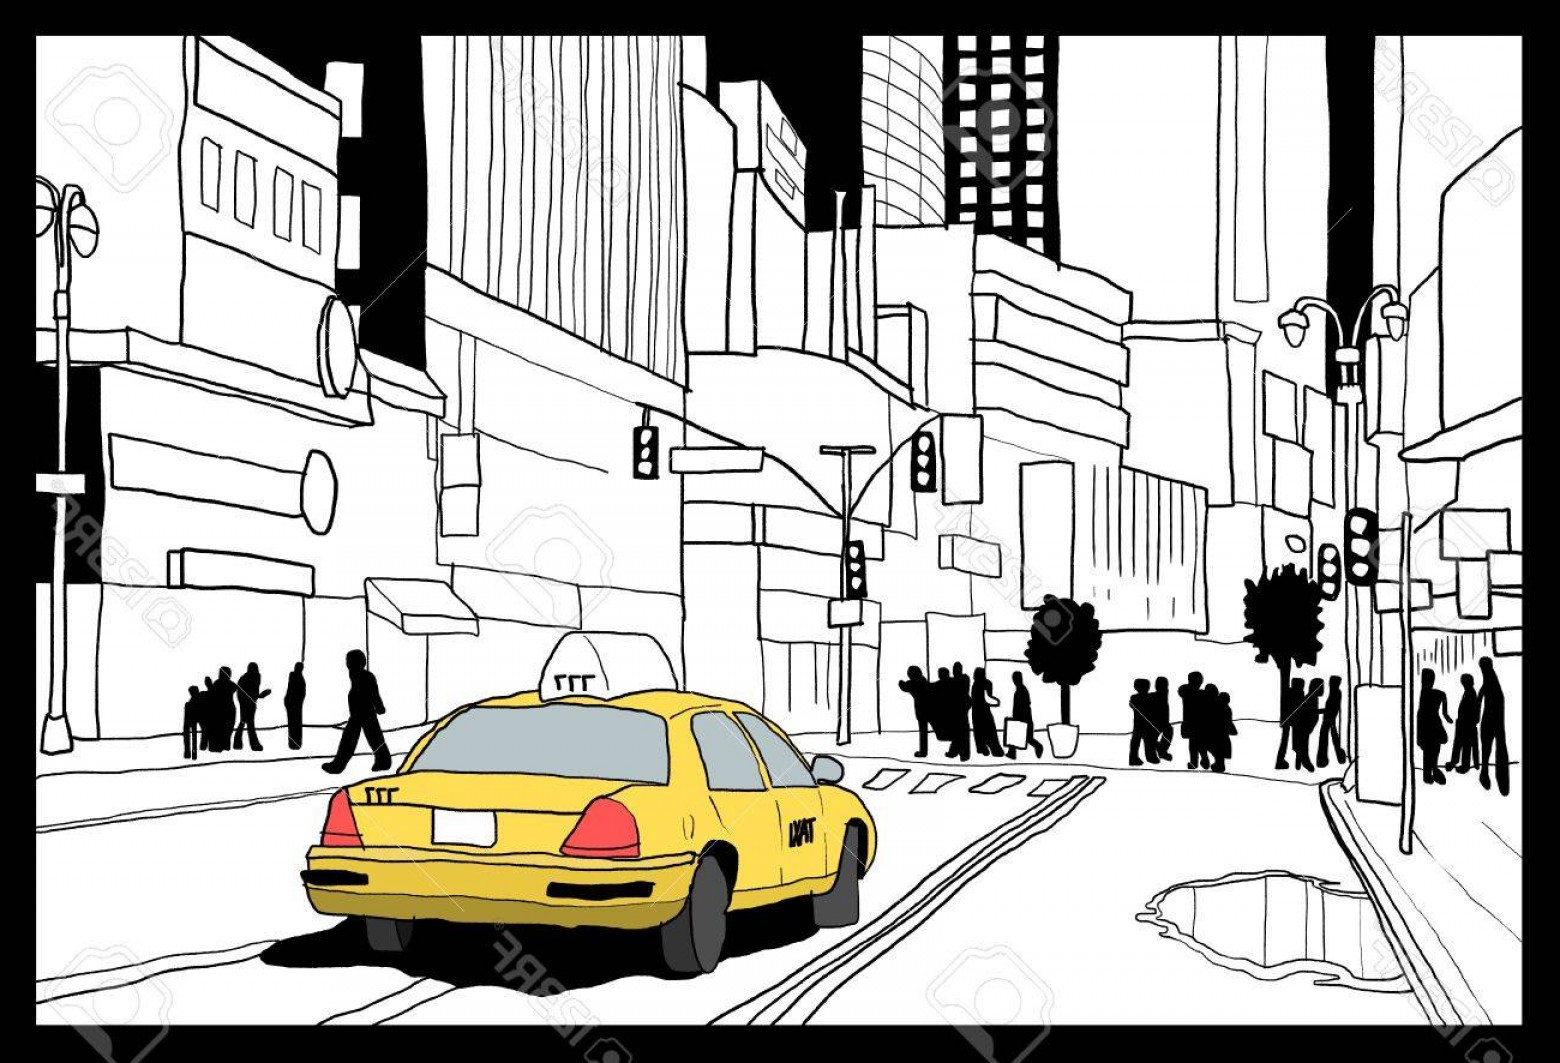 New York Taxi Cab Vector: Photostock Vector New York City Taxi Cab Times Square Illustration